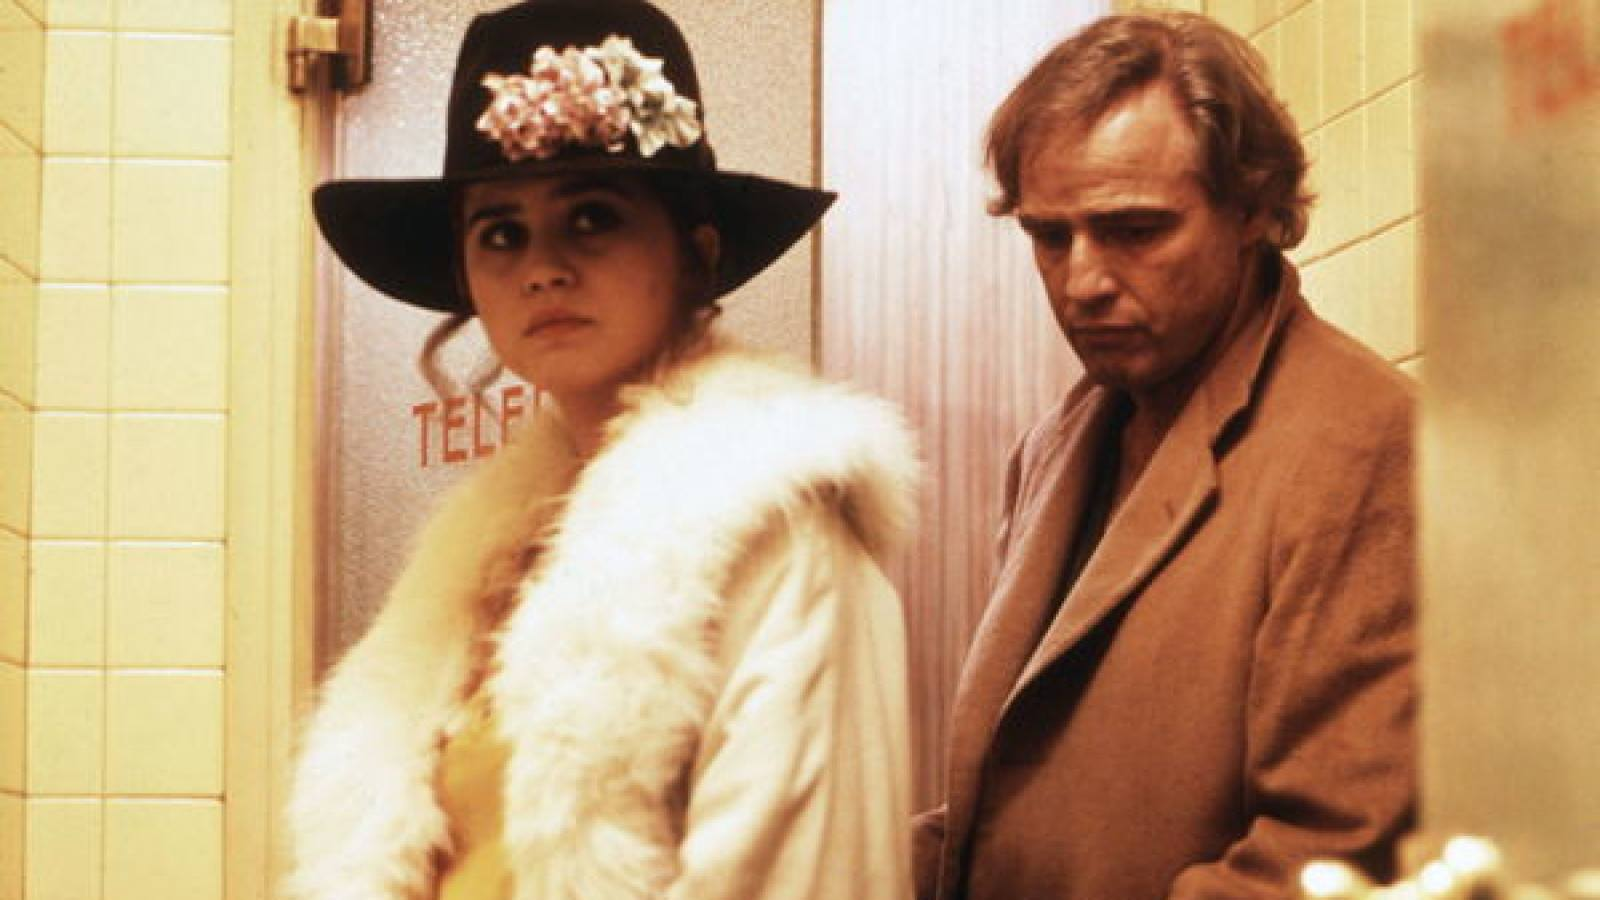 Paul and Jeanne standing next to each other in Last Tango in Paris